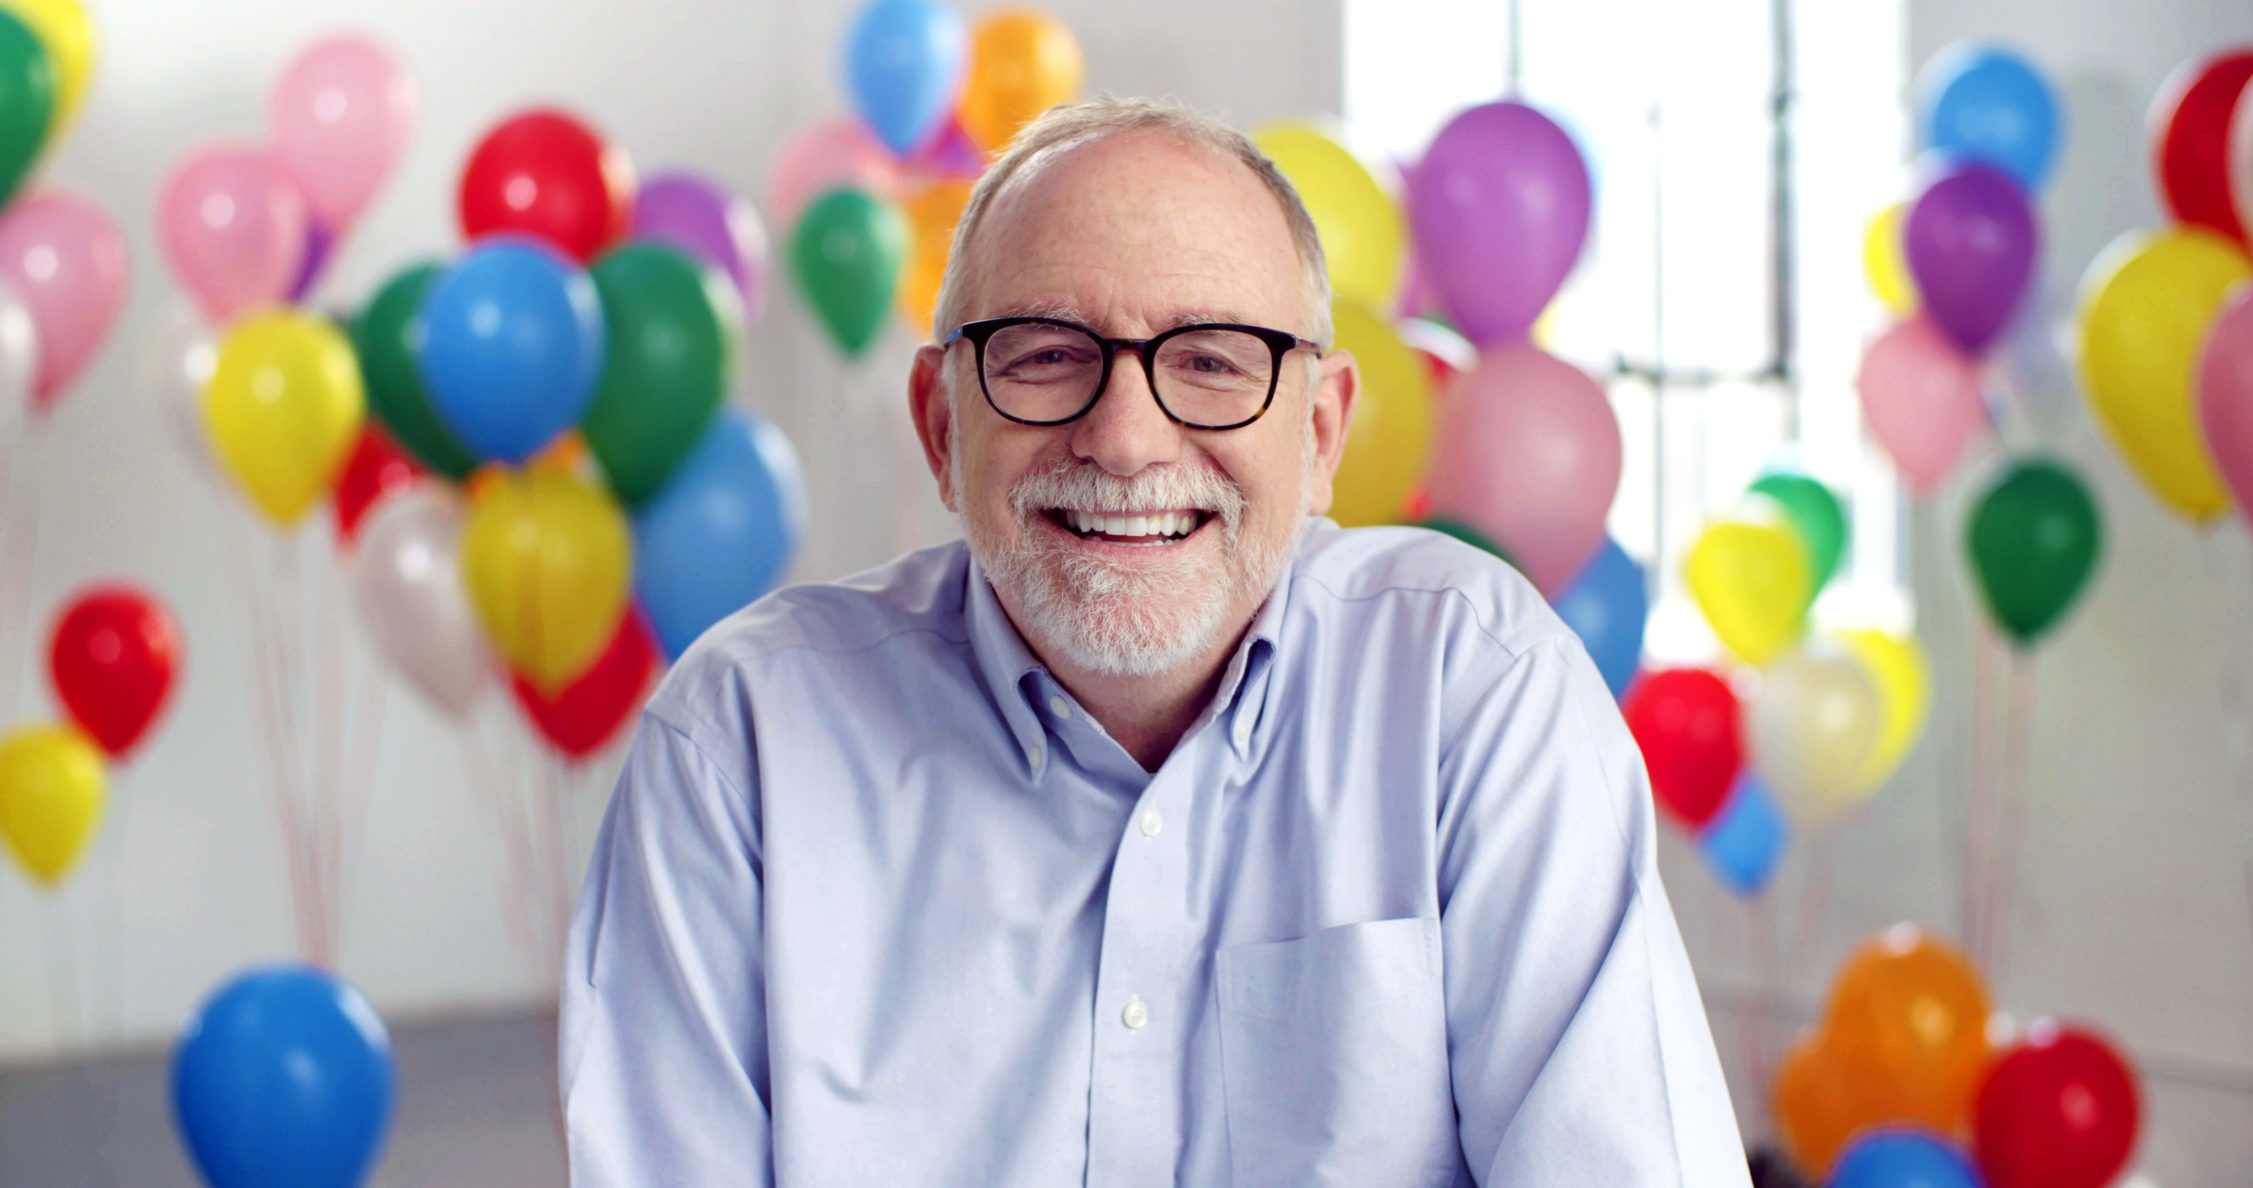 Bob Goff as featured on the Jesus Calling podcast